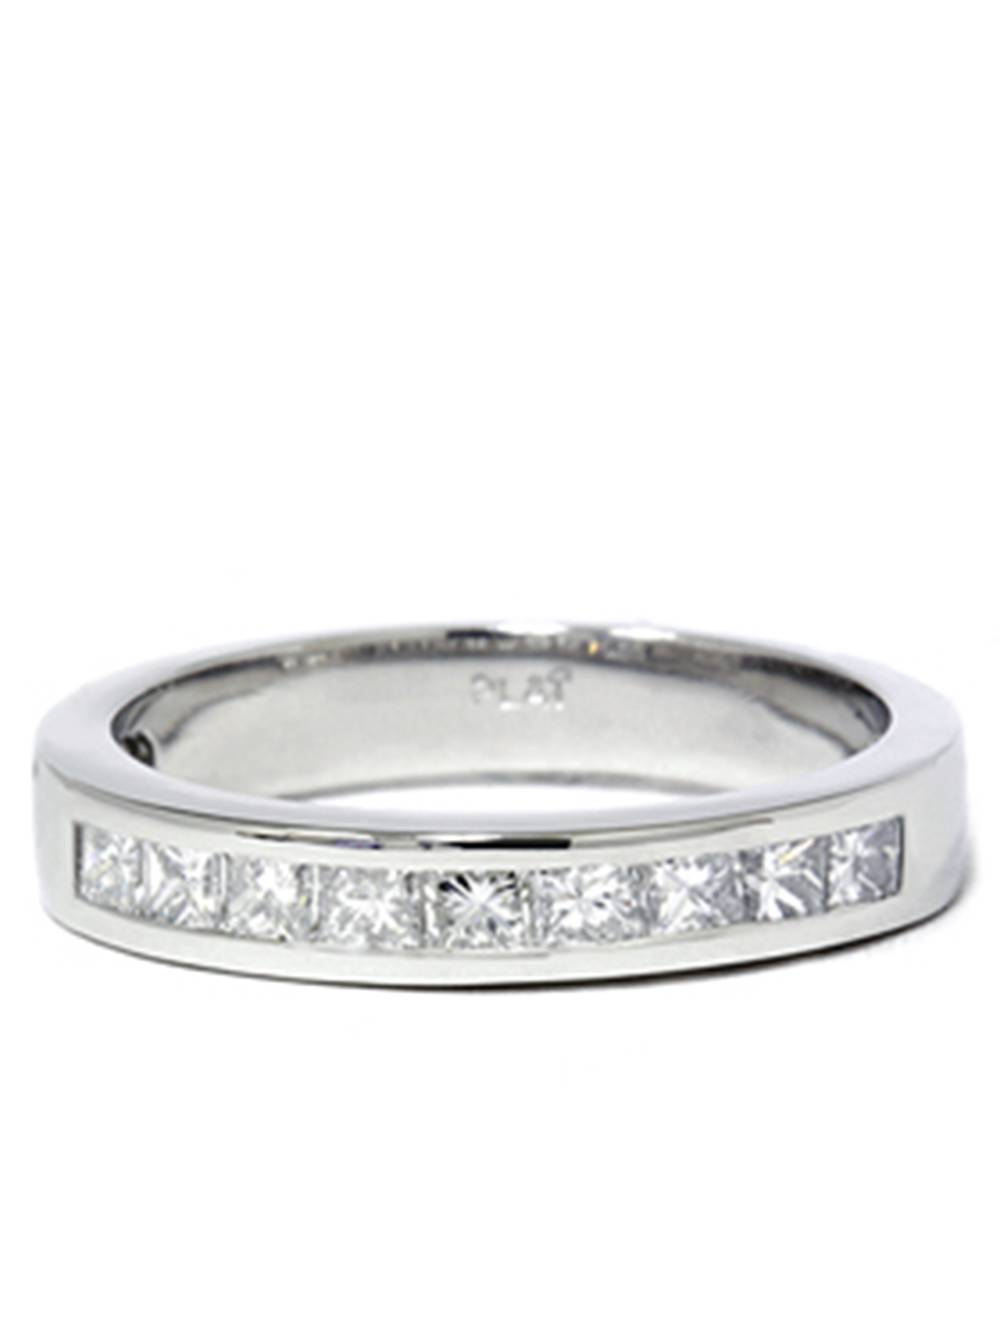 950 Platinum 5 8ct Princess Cut Diamond Wedding Ring by Pompeii3